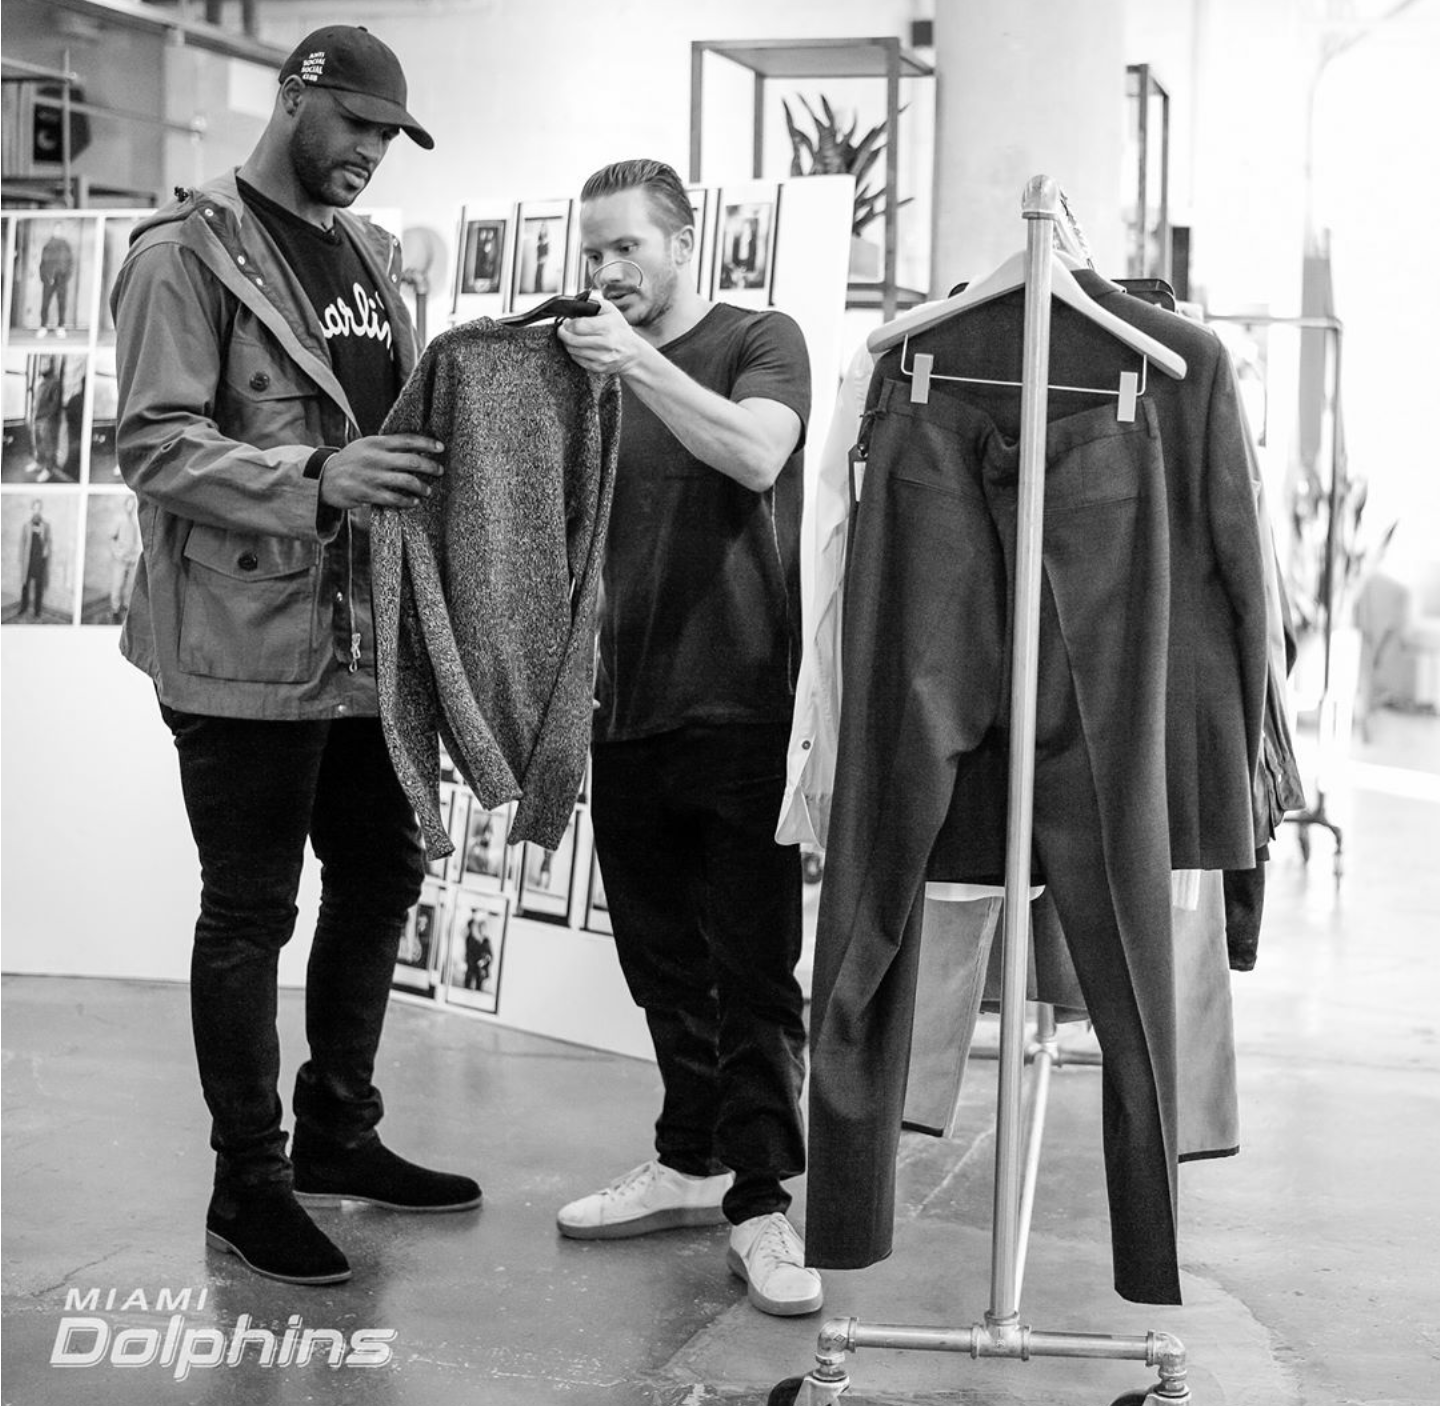 NFL Andre Branch Interns For Rag & Bone Expresses His Passion For Fashion